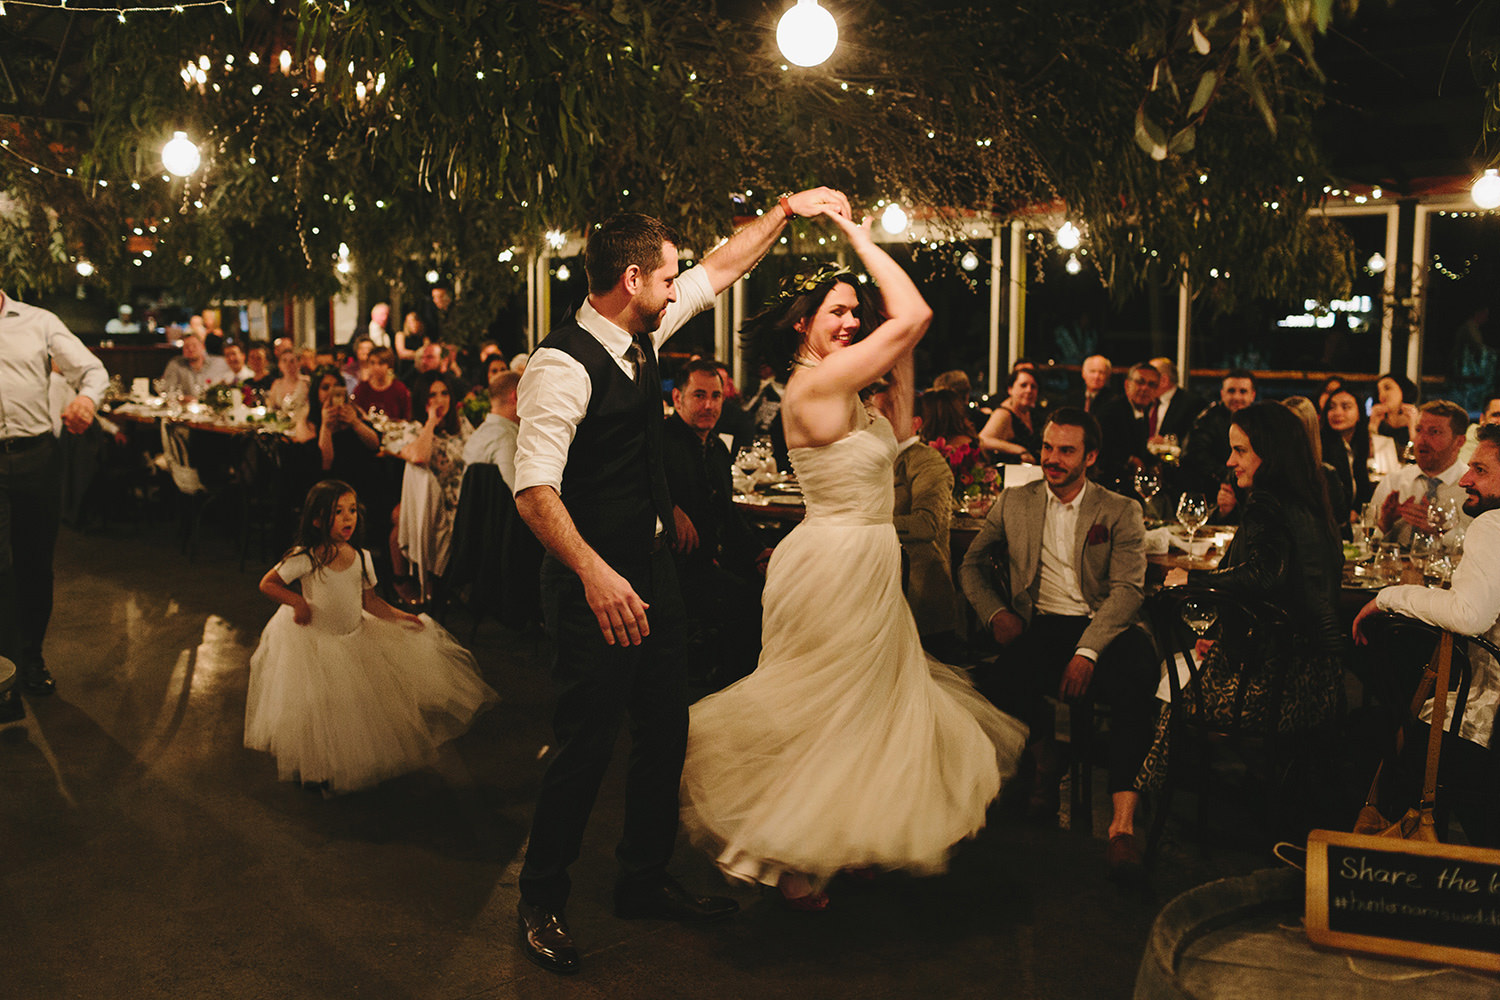 Melbourne_Winery_Wedding_Chris_Merrily176.JPG